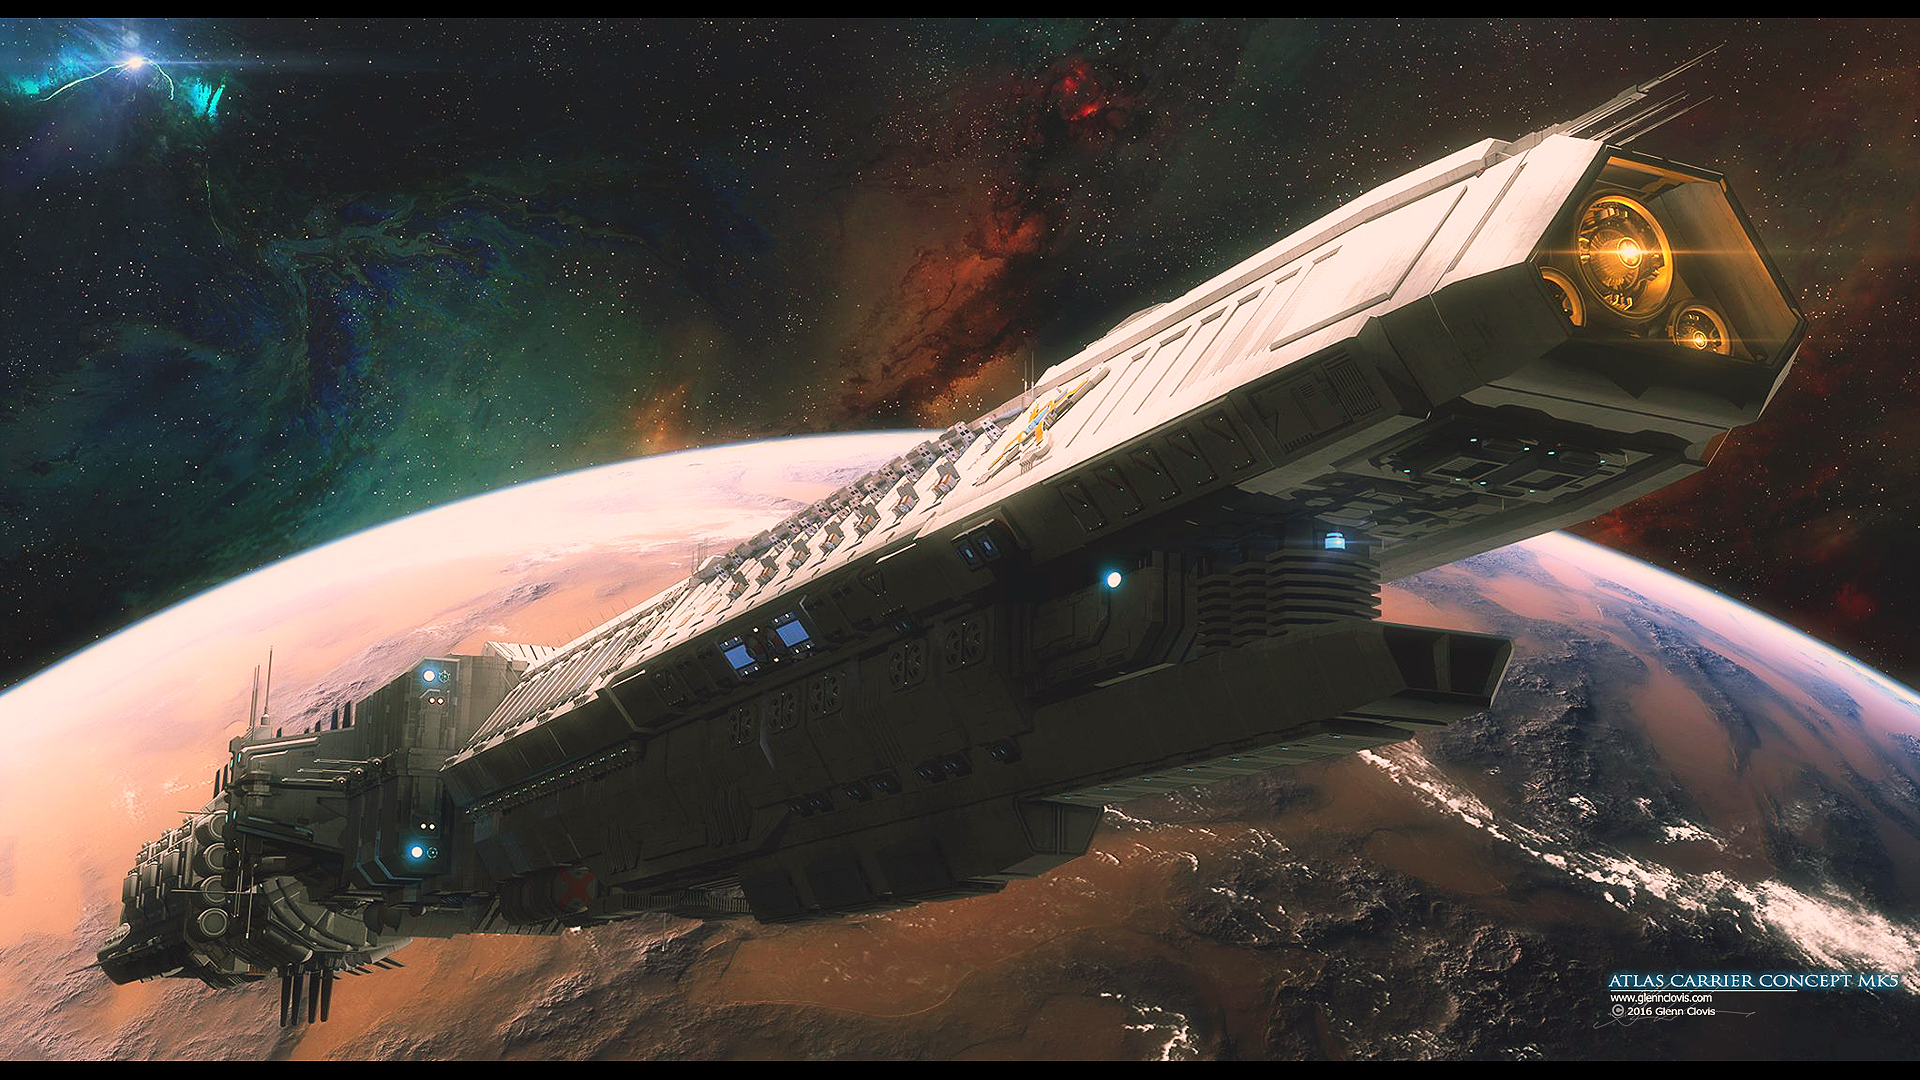 Atlas Carrier Concept MK5 by GlennClovis on DeviantArt